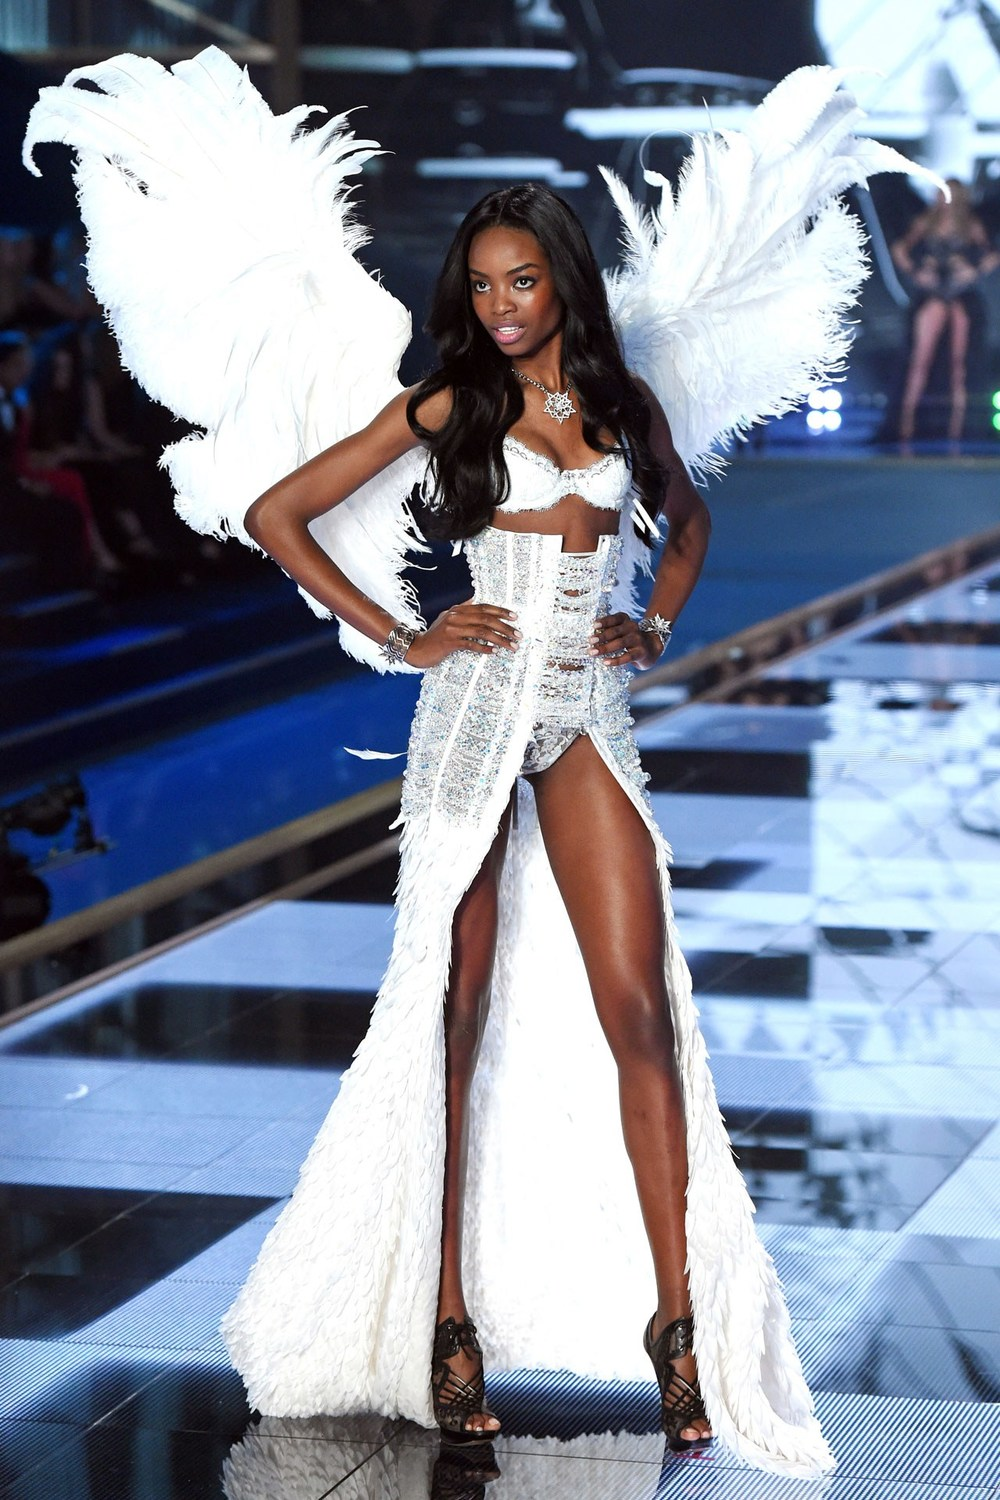 vs-catwalk-45-2dec14-rex_b.jpg